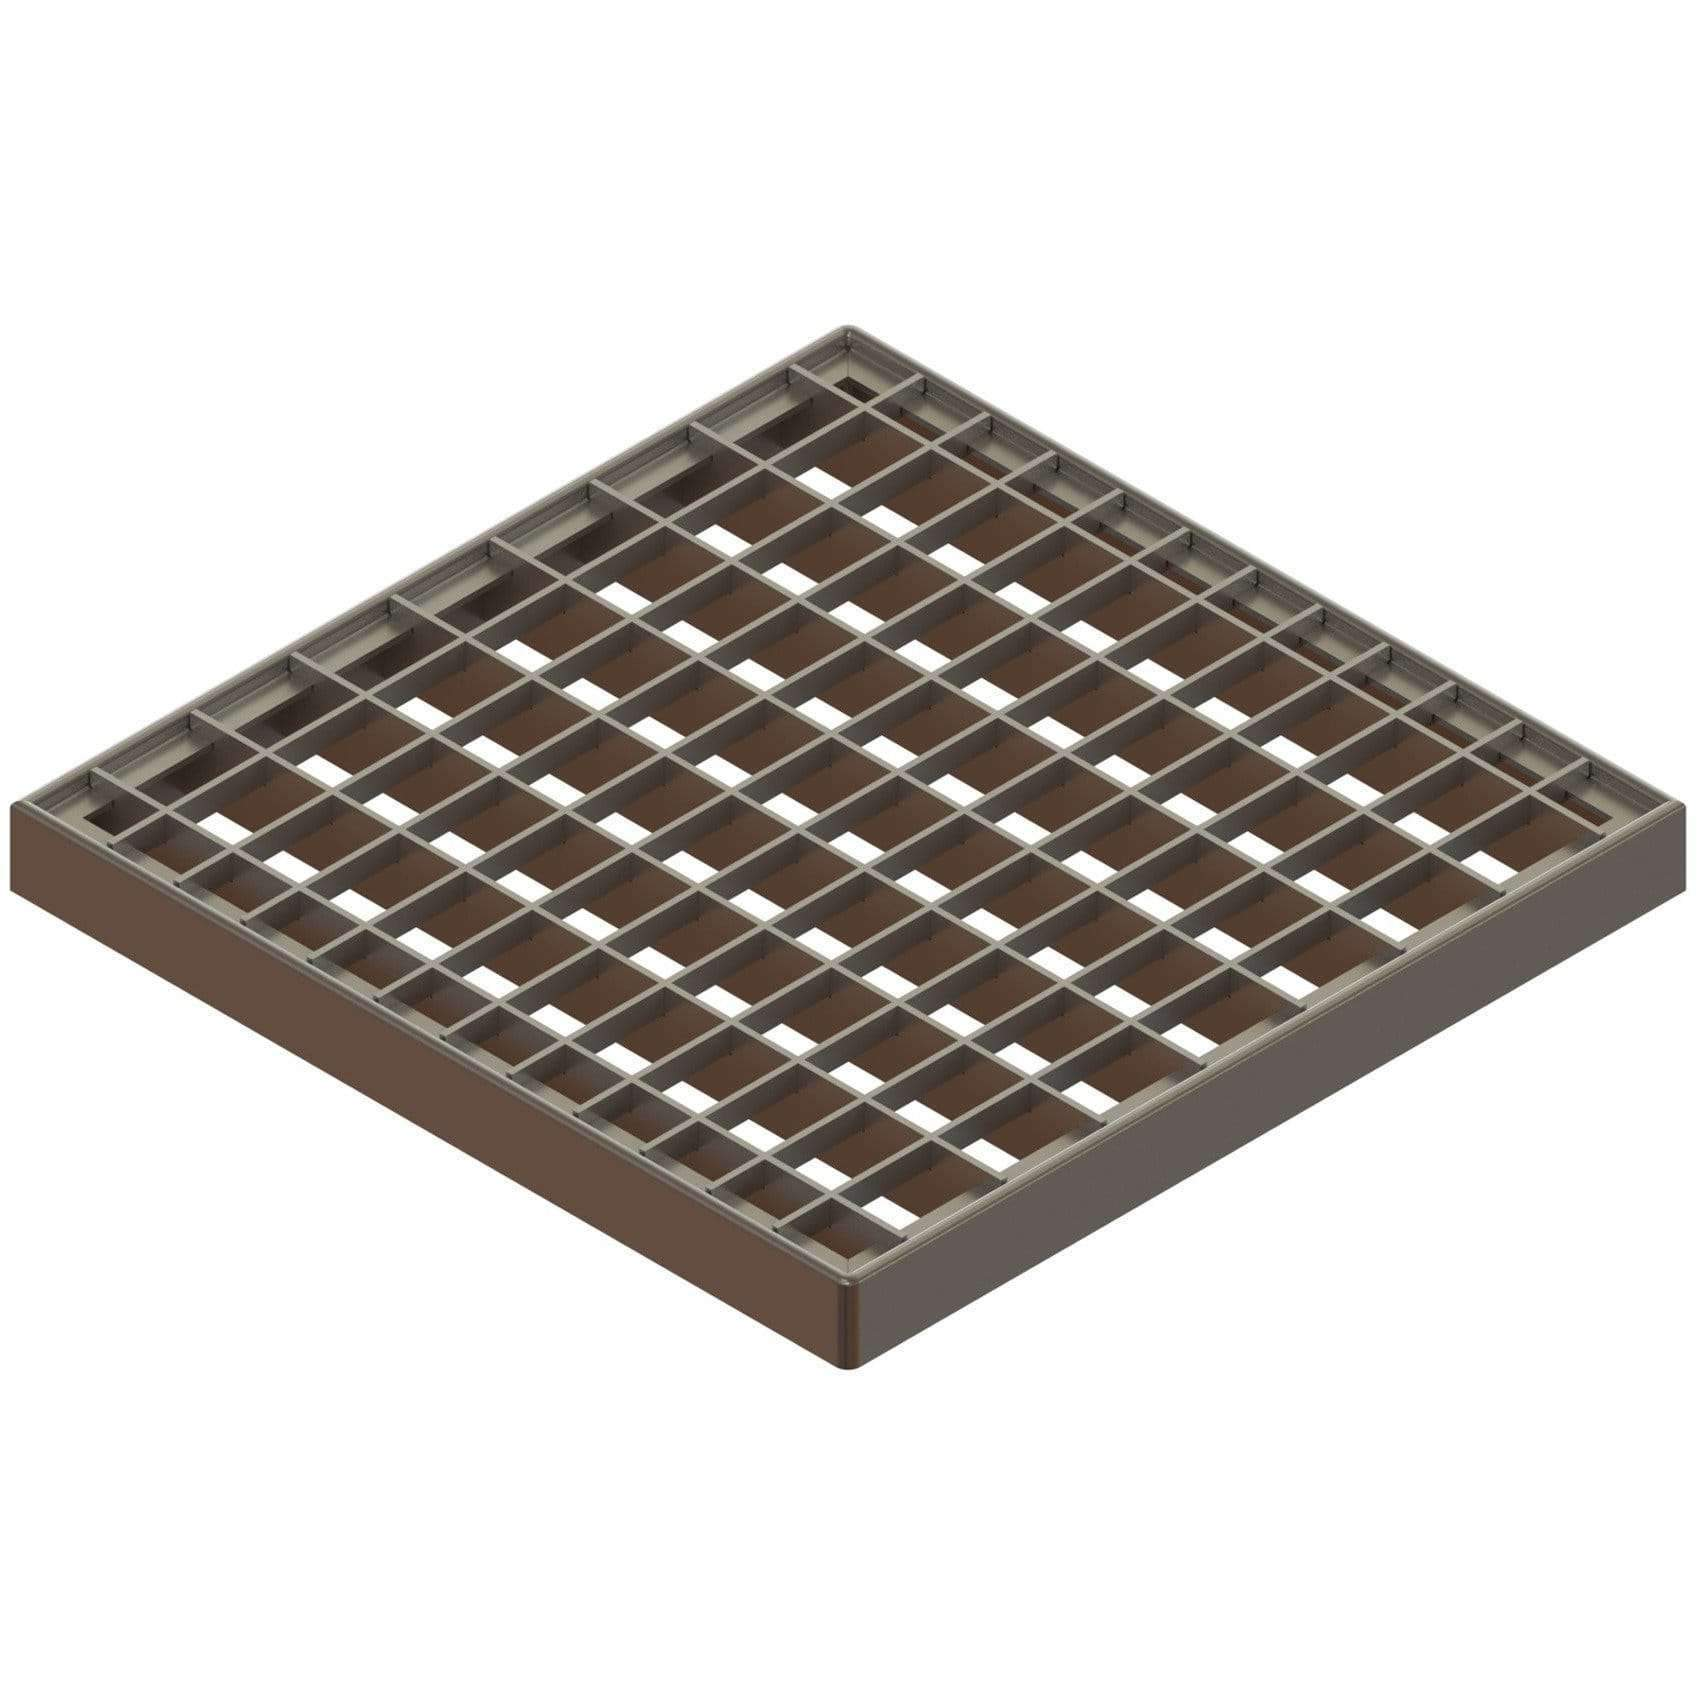 12x12 Galvanized Stamped Steel Grate Gratings Standartpark